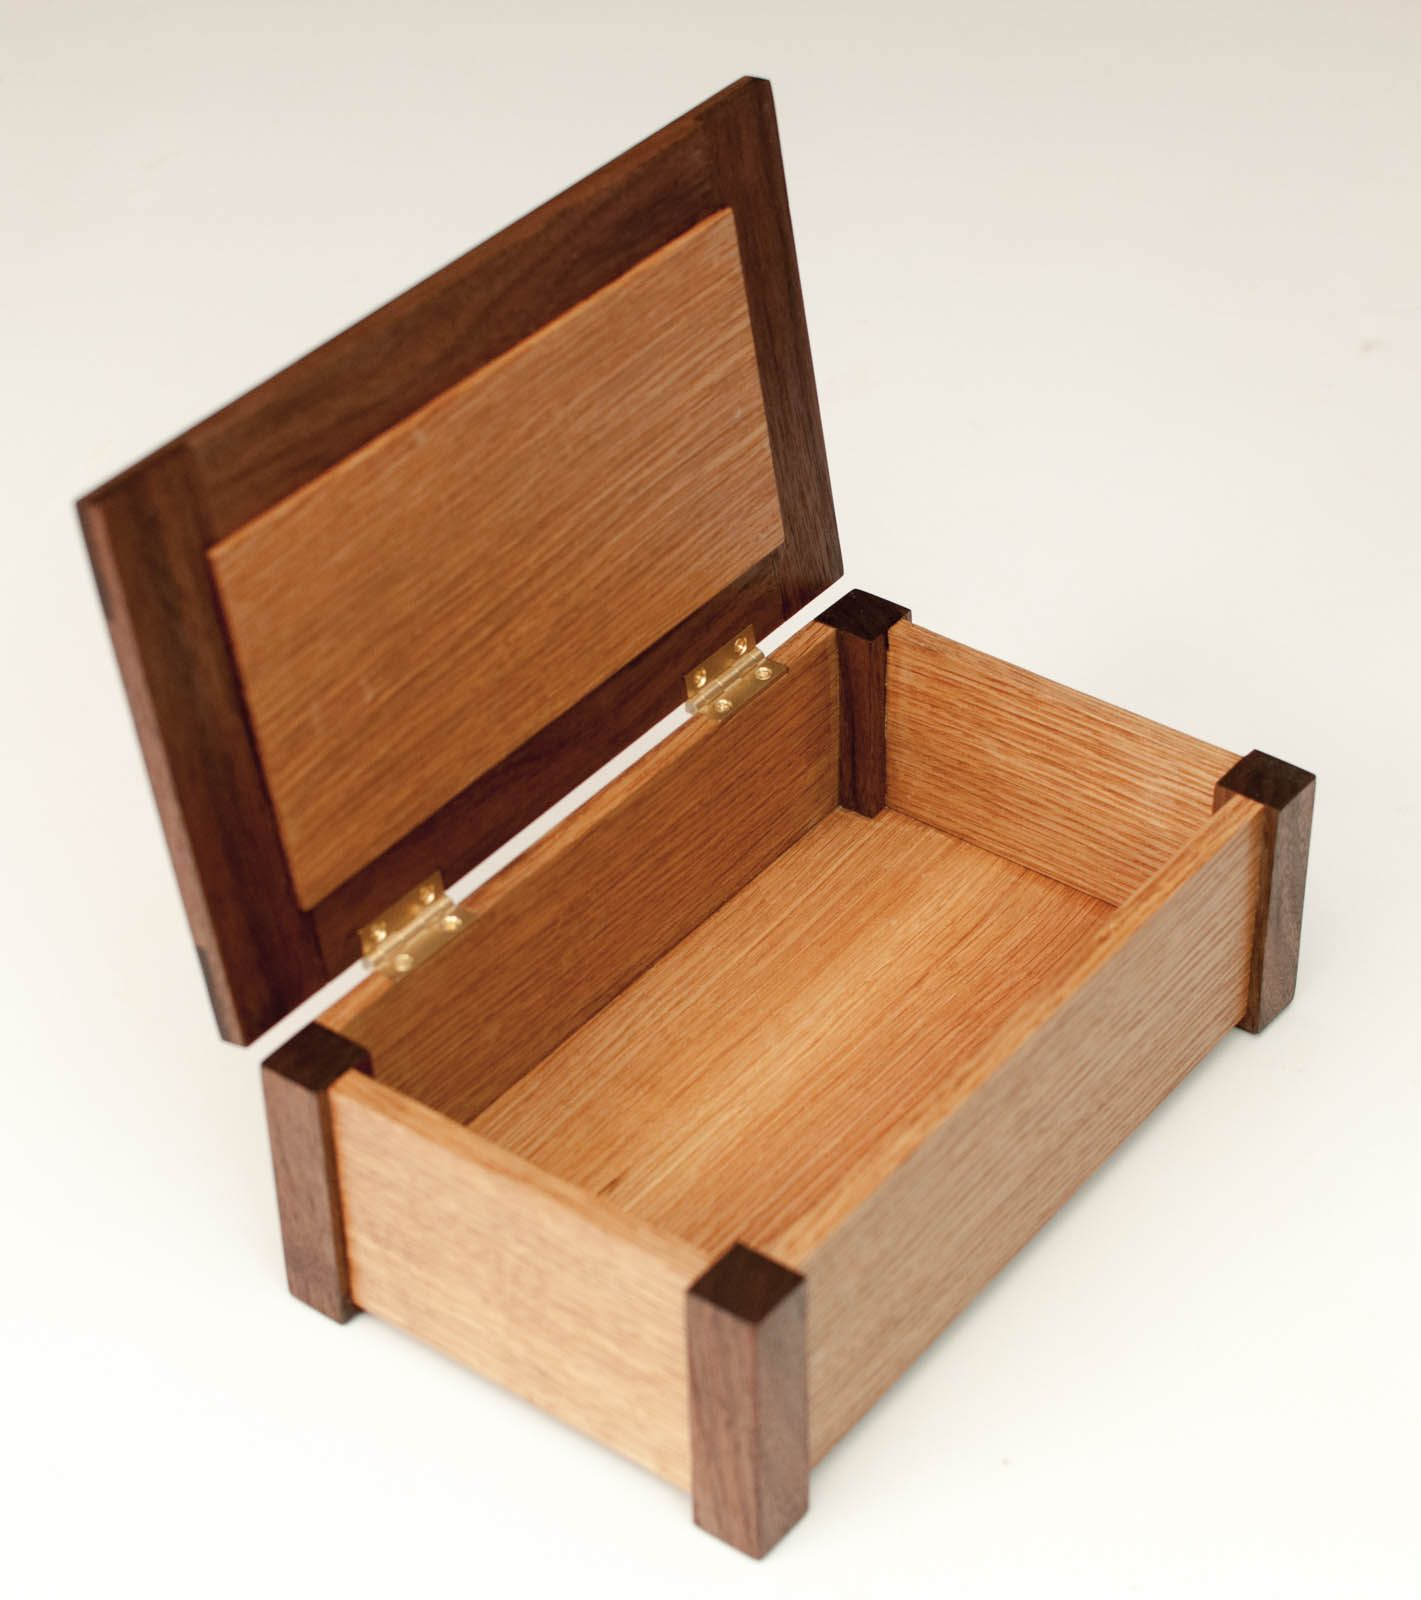 Rift Sawn White Oak And Walnut Box Woodworking Plans In 2019